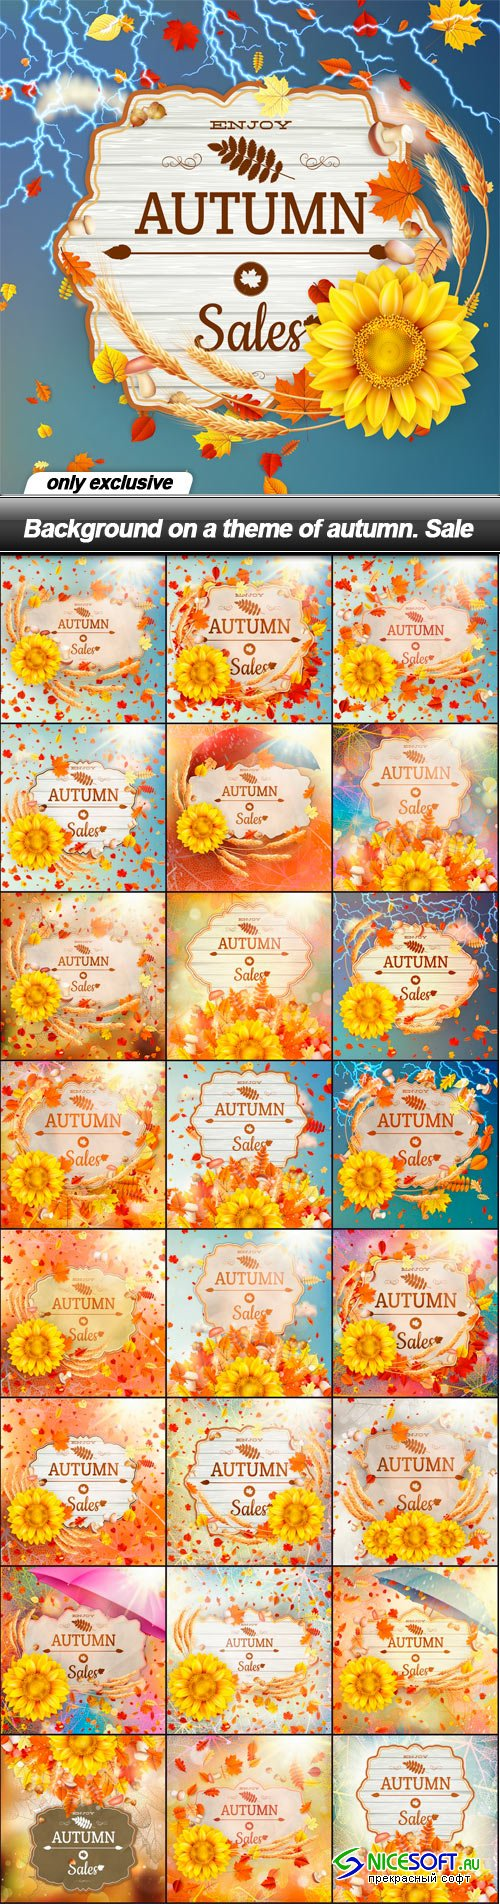 Background on a theme of autumn. Sale